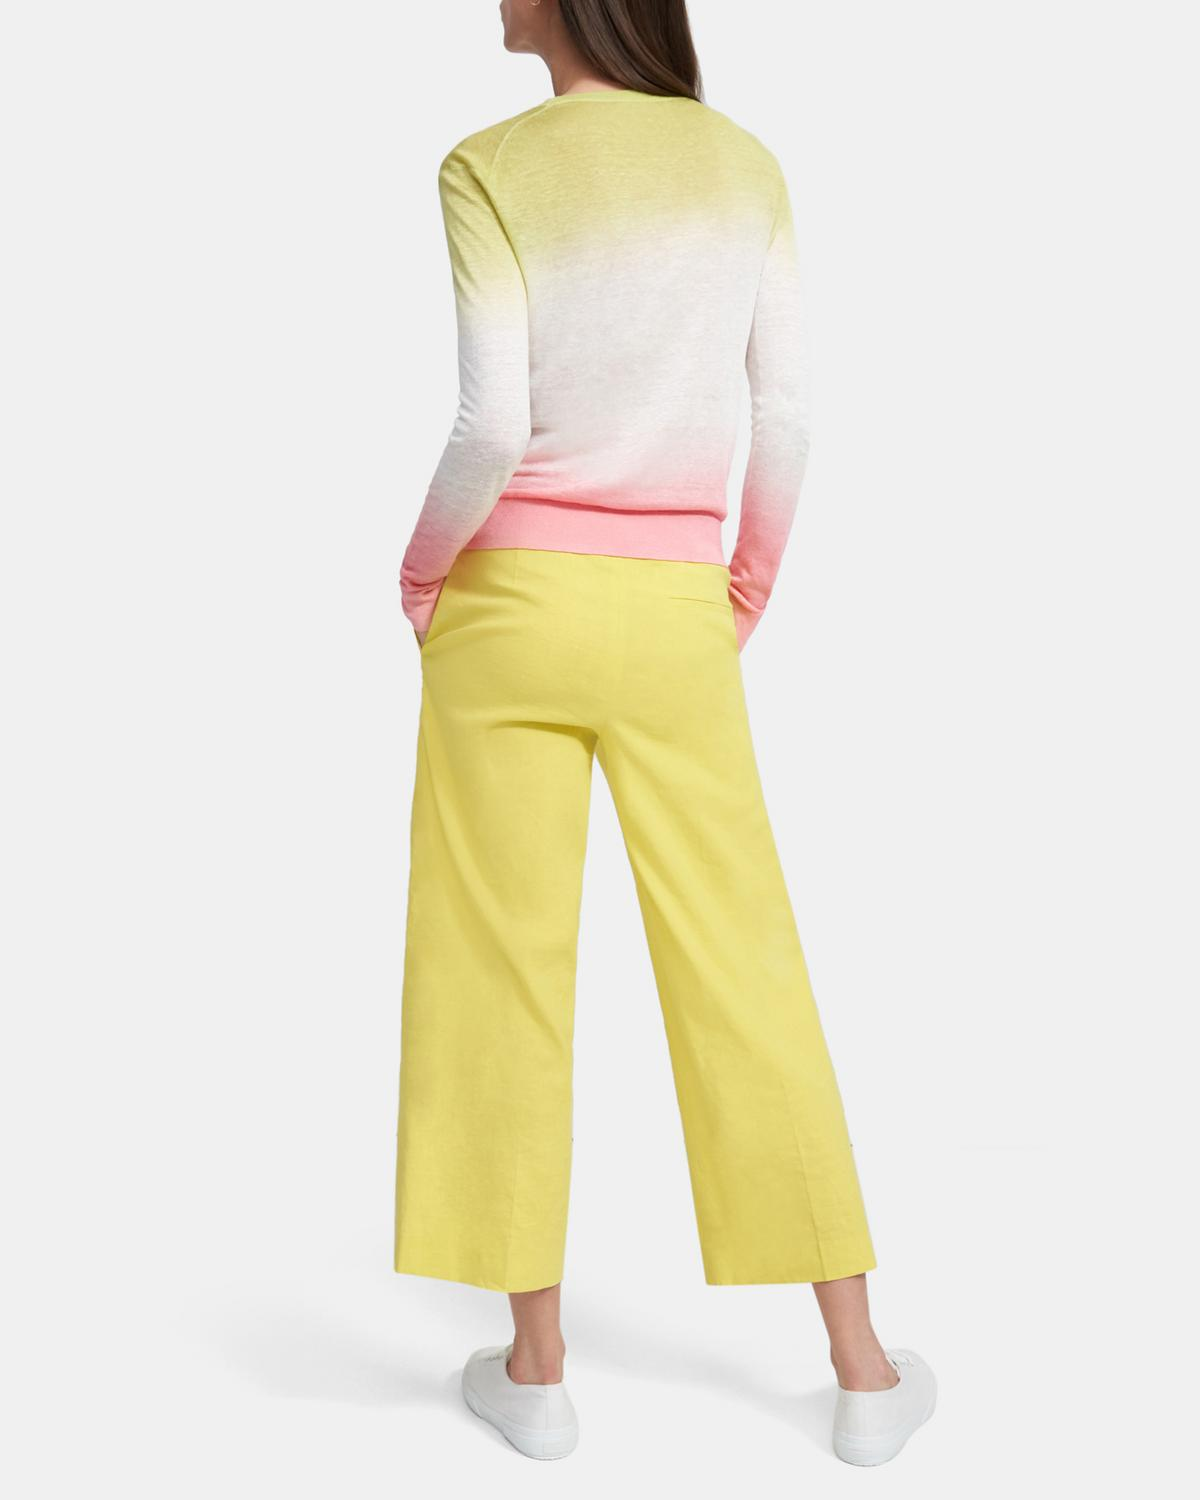 Dual Ombré Crewneck Sweater in Linen-Viscose